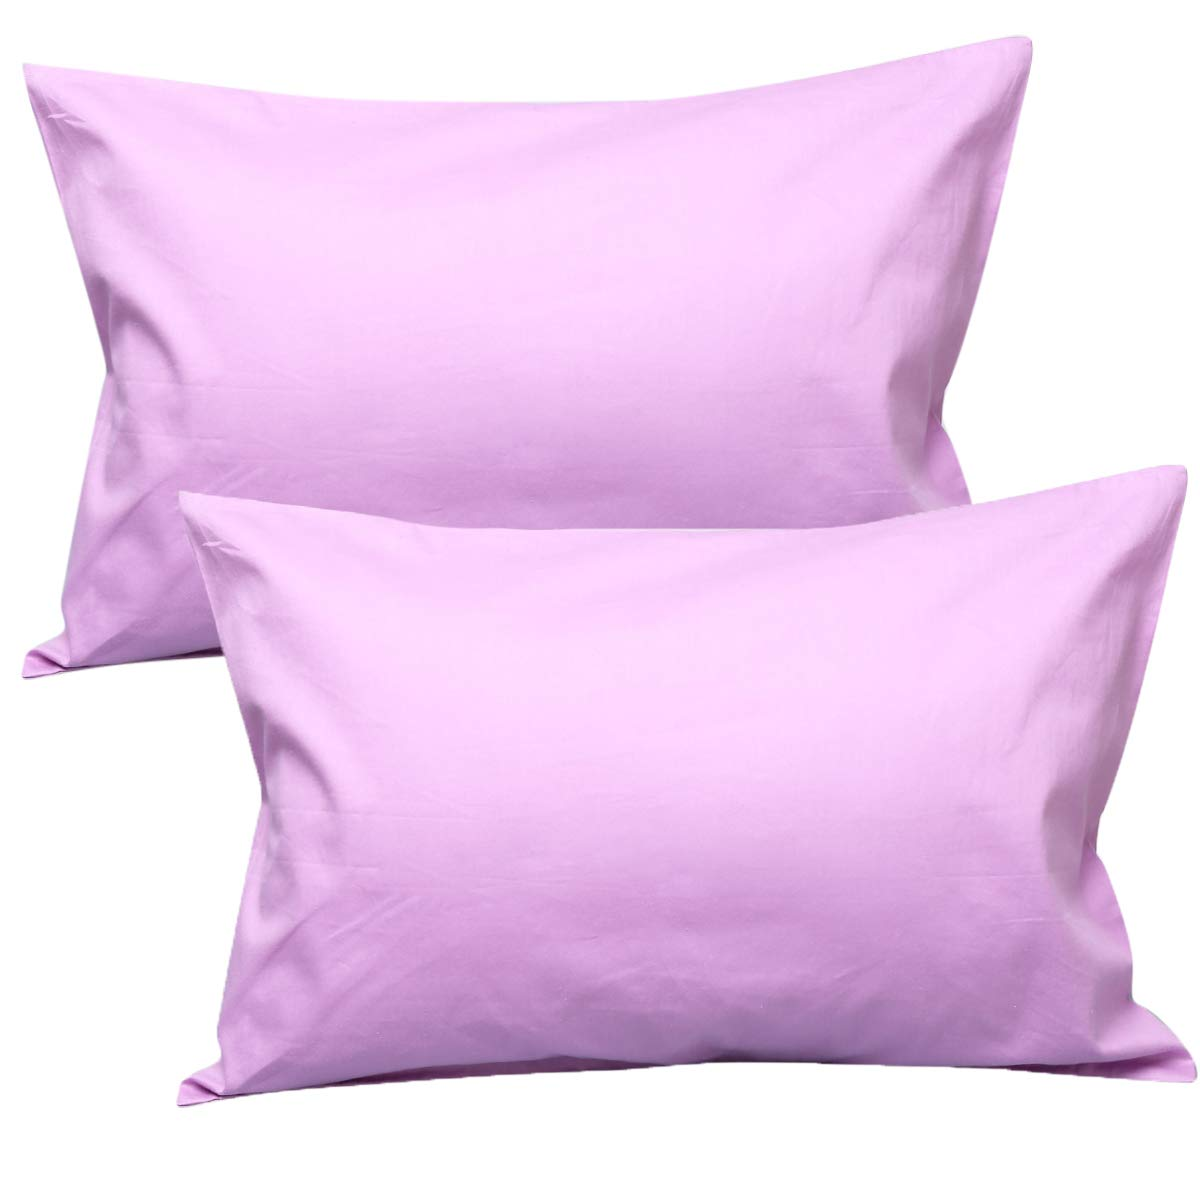 UOMNY Kid Pillowcases 2 Pack 100% Cotton Pillow Cover 14x20 Baby Pillow Cases for Sleeping Tiny Pillows case for Kids Solid Pillowcases Travel Pillowcases Toon Purple Kids' Pillowcases